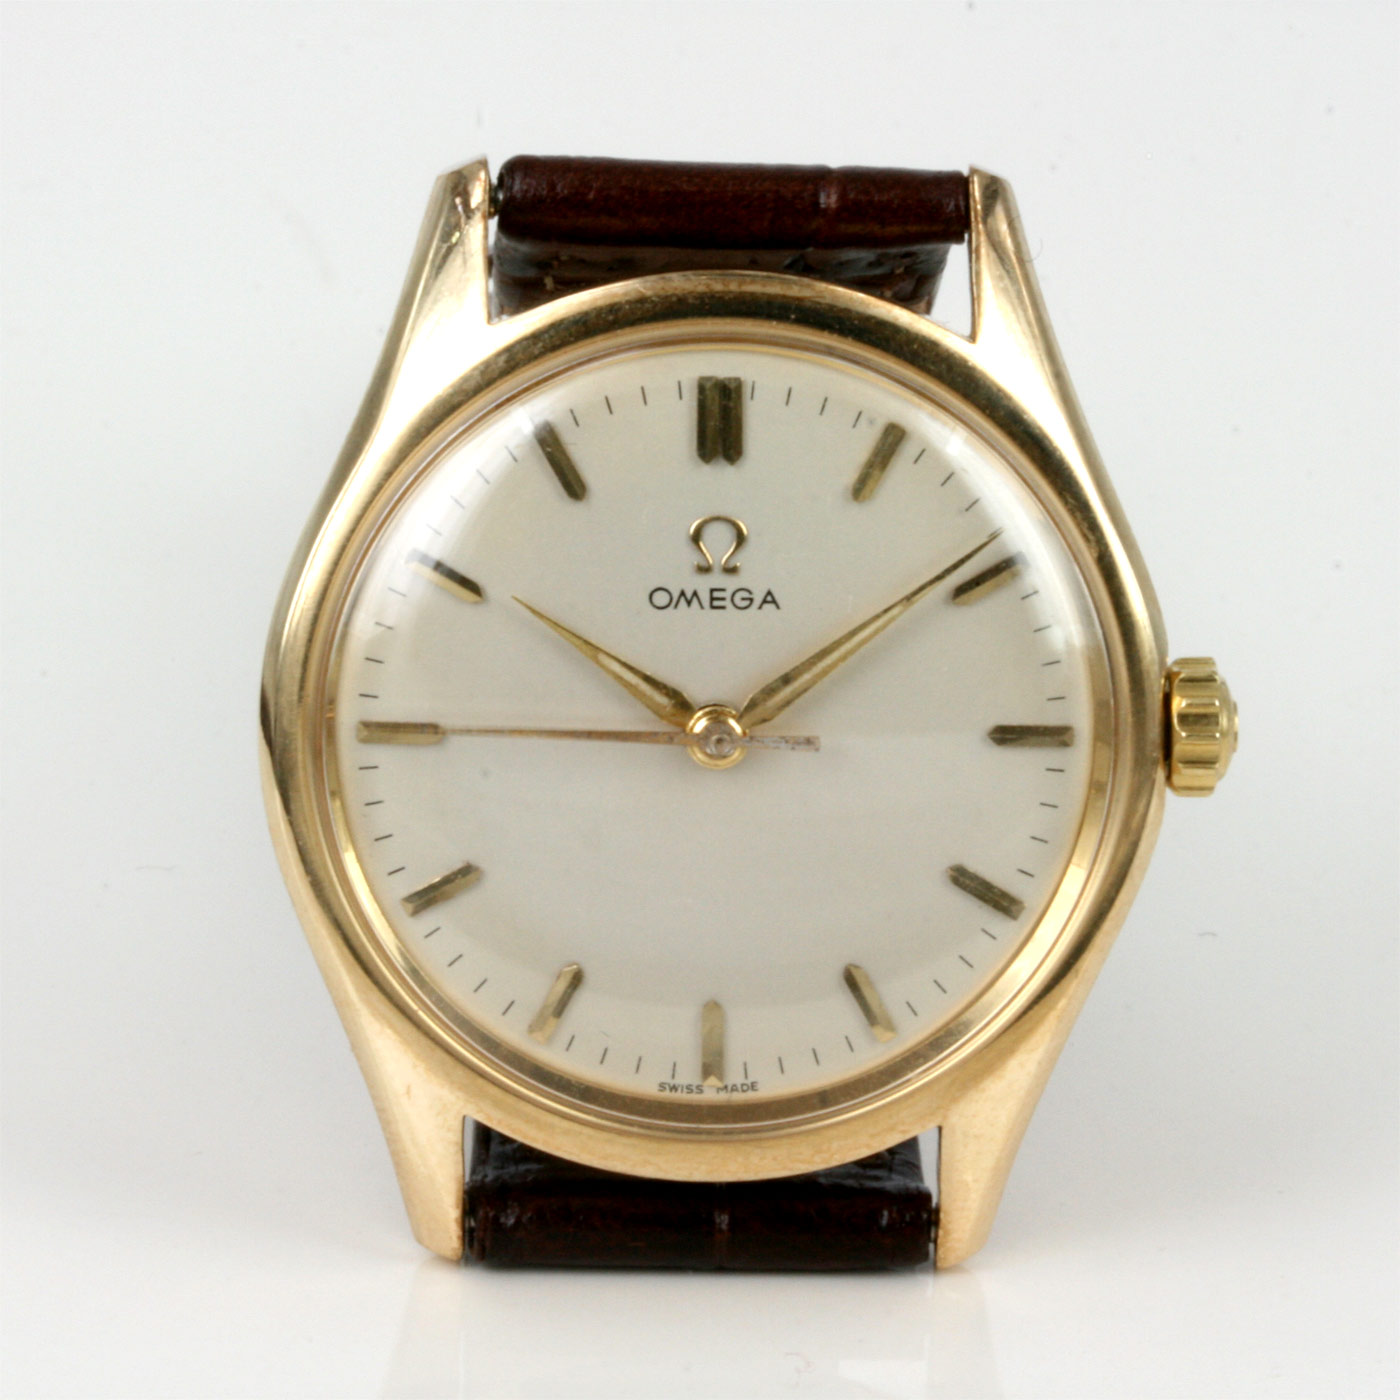 Buy vintage gold omega watch from 1963 sold items sold omega watches sydney kalmarantiques for Omega watch vintage